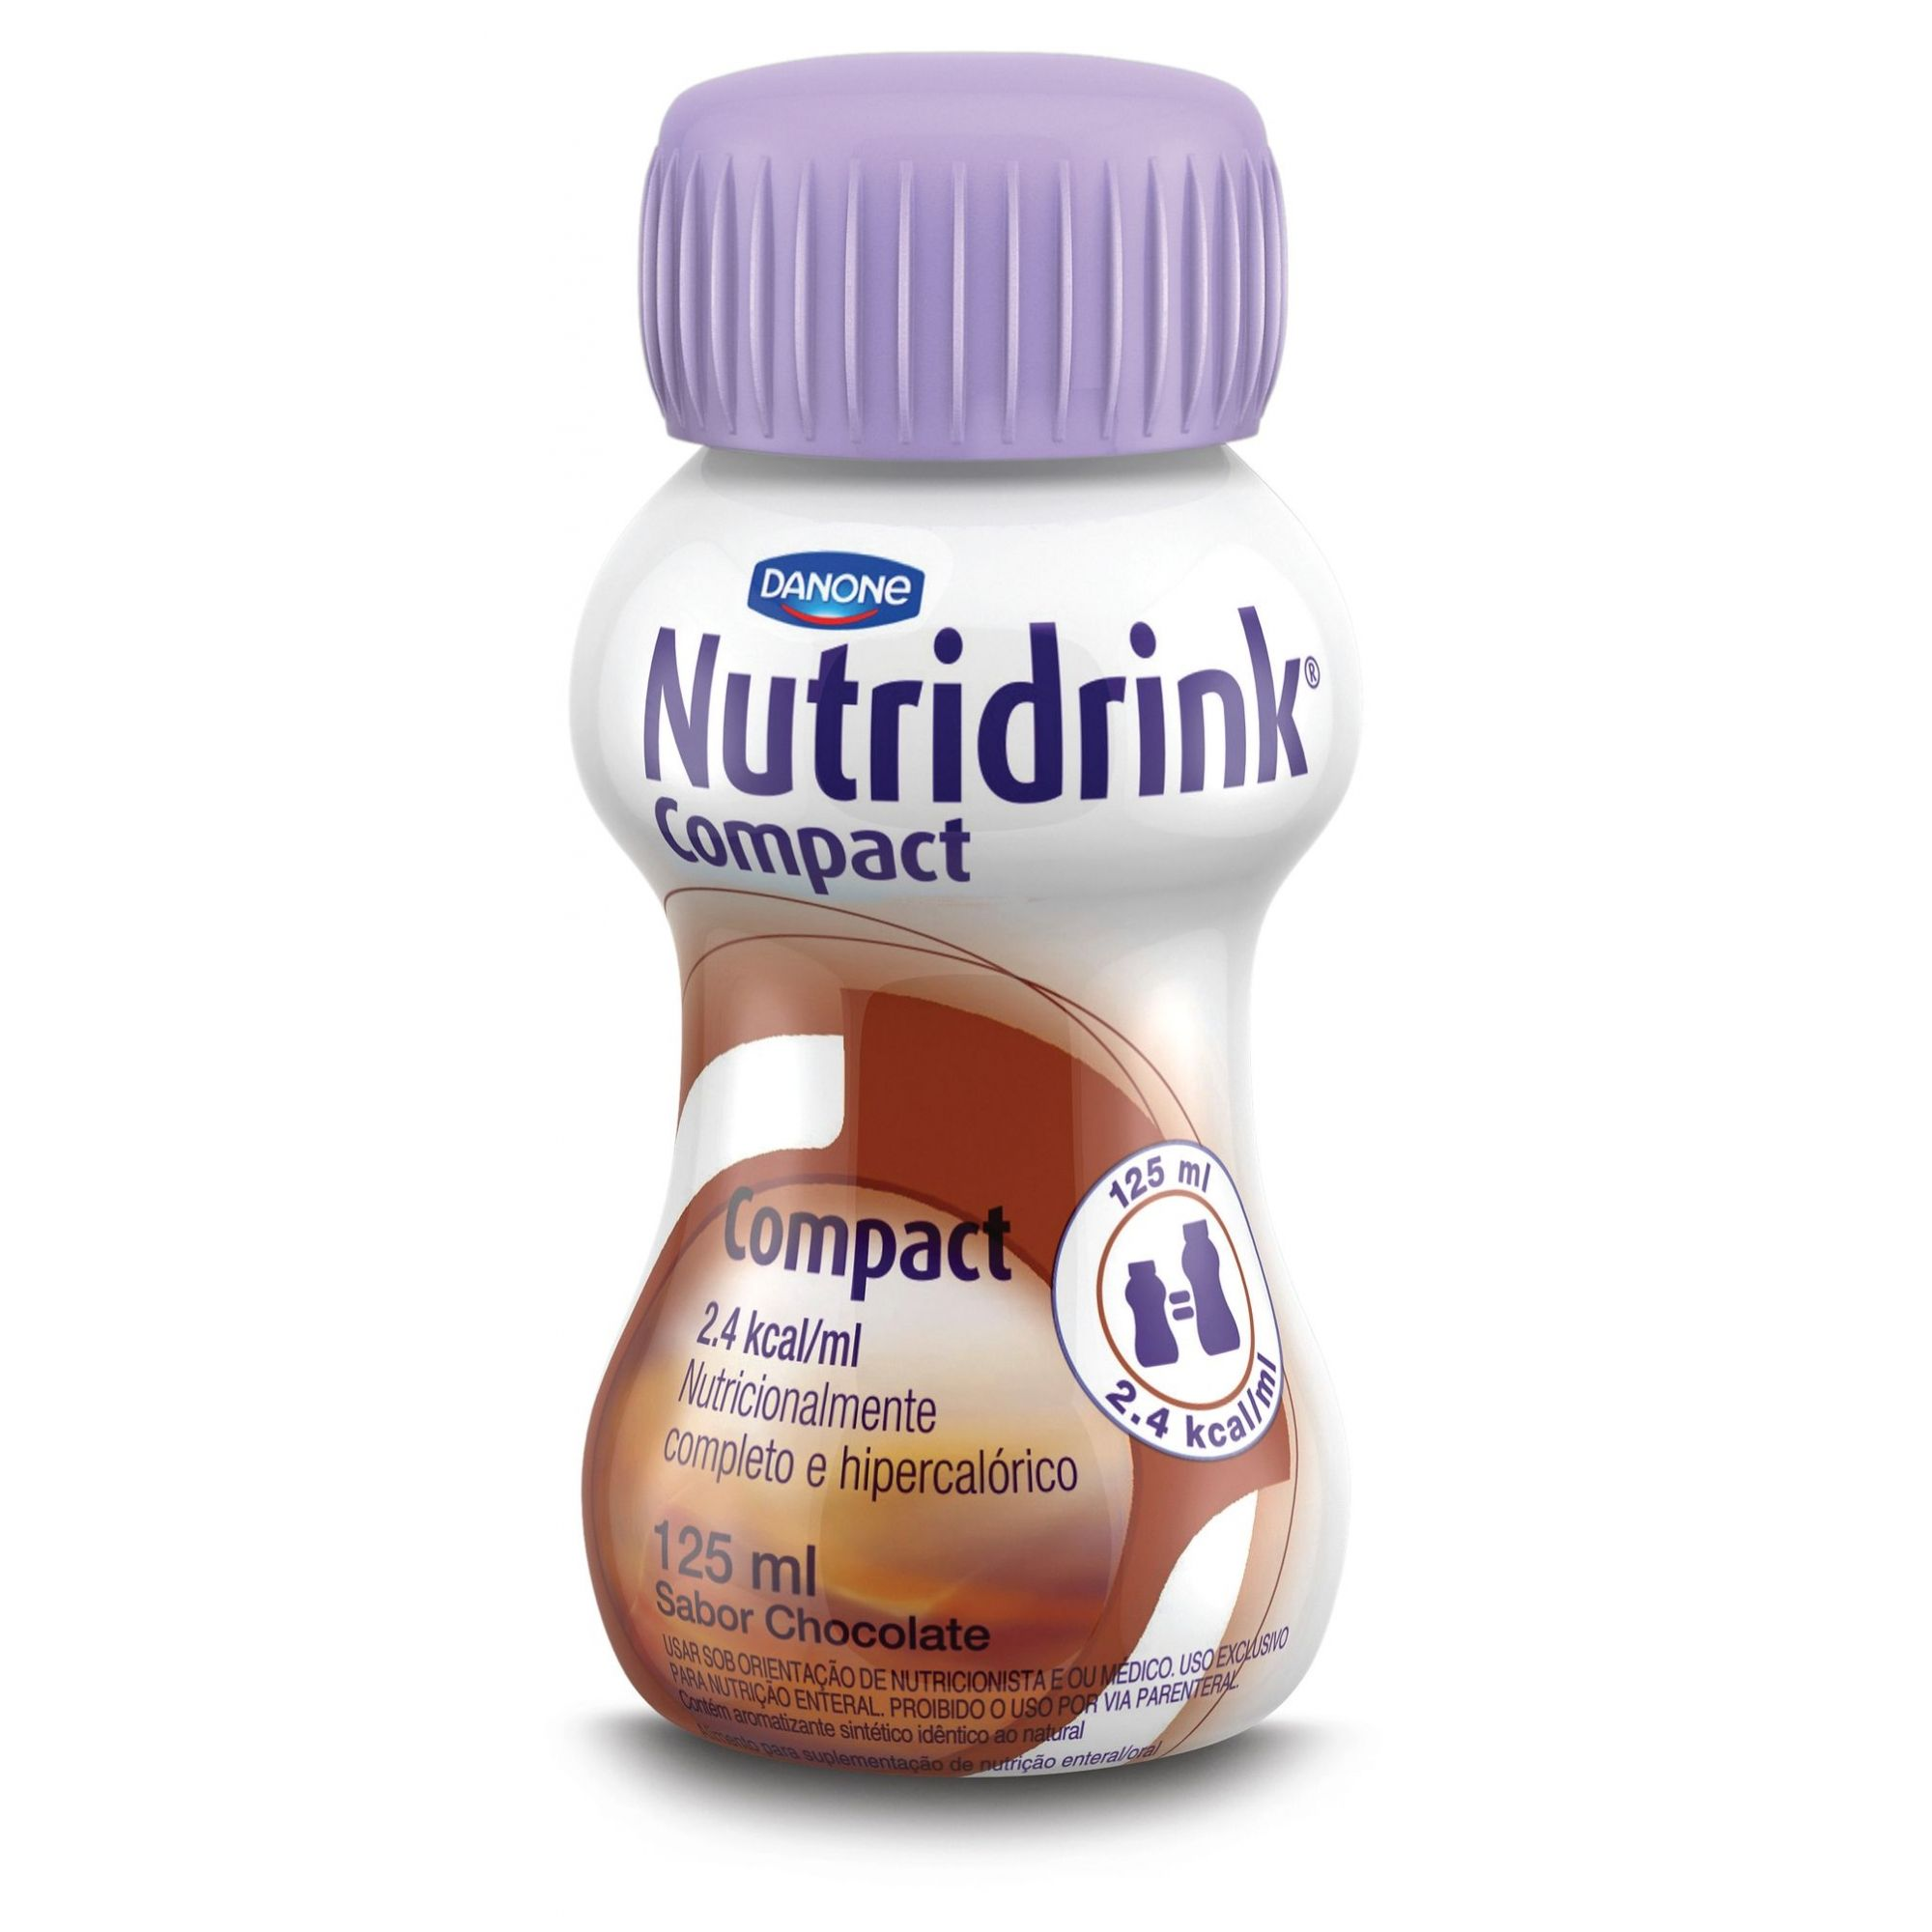 Nutridrink Compact Chocolate - 125mL - (Danone)